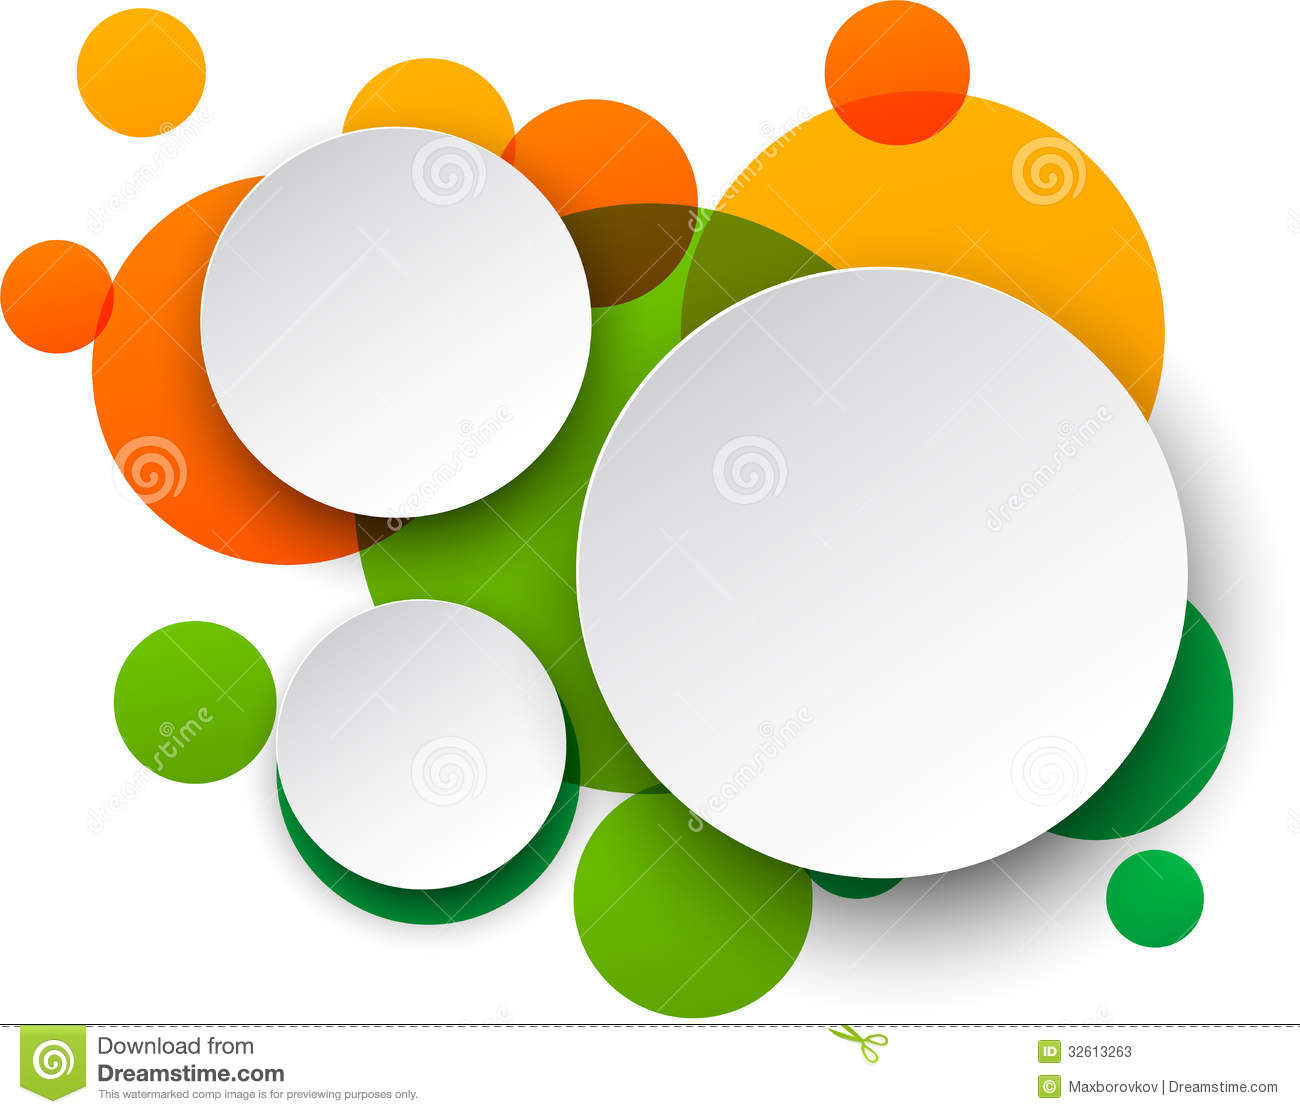 Best Image Of Diagram Us Map Eps Millions Ideas Diagram And - Free us map mail